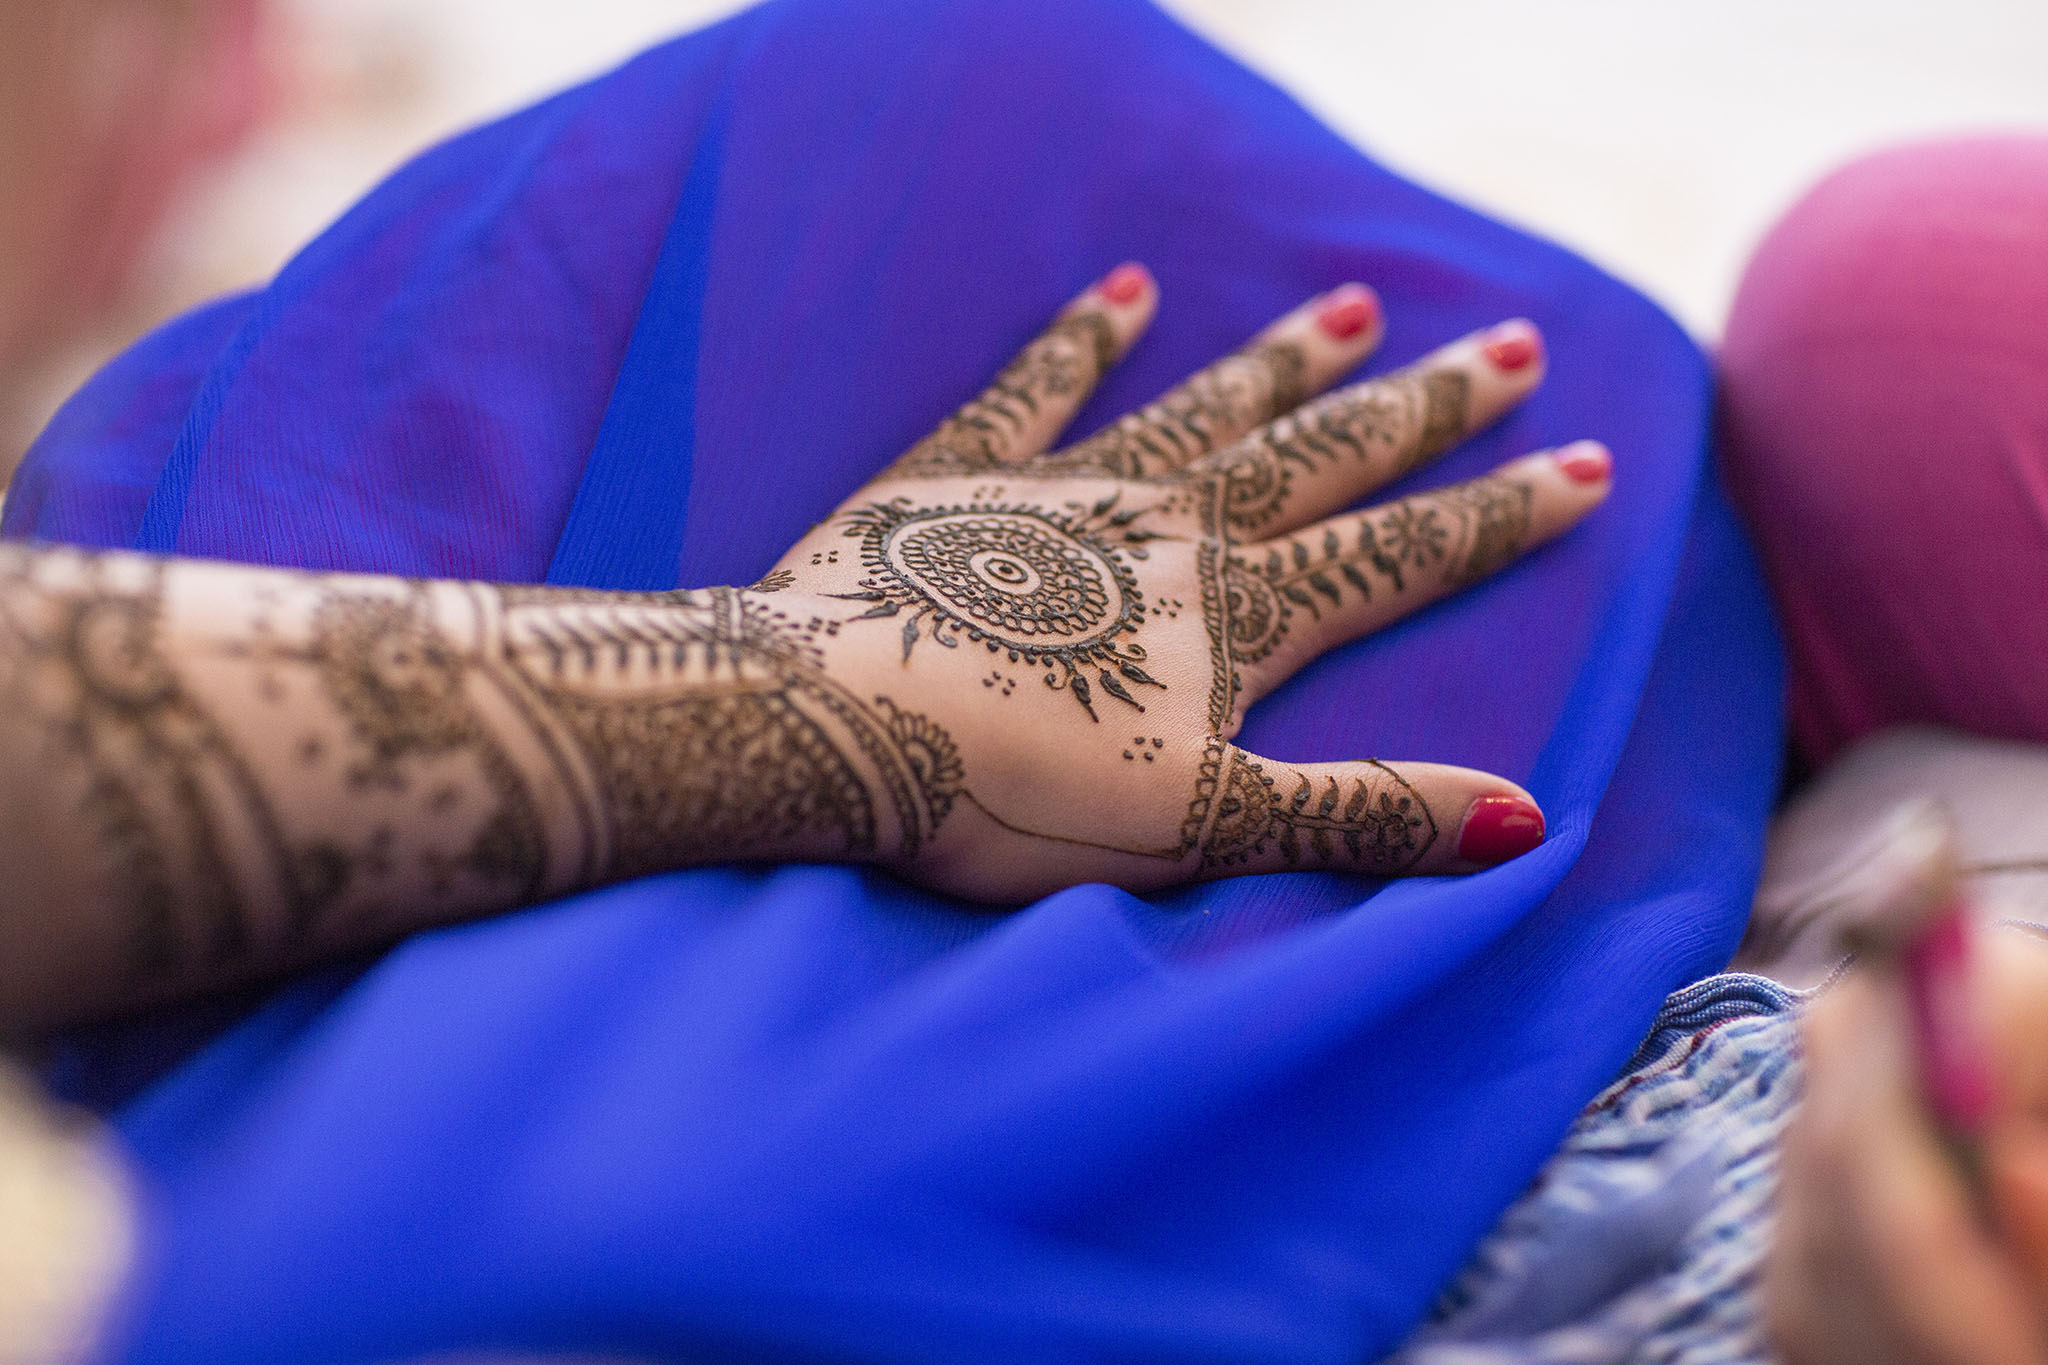 elizabethgphotography_kingslangley_hertfordshire_fineart_indian_wedding_mehndi_photography_jigna_bhuja_08.jpg